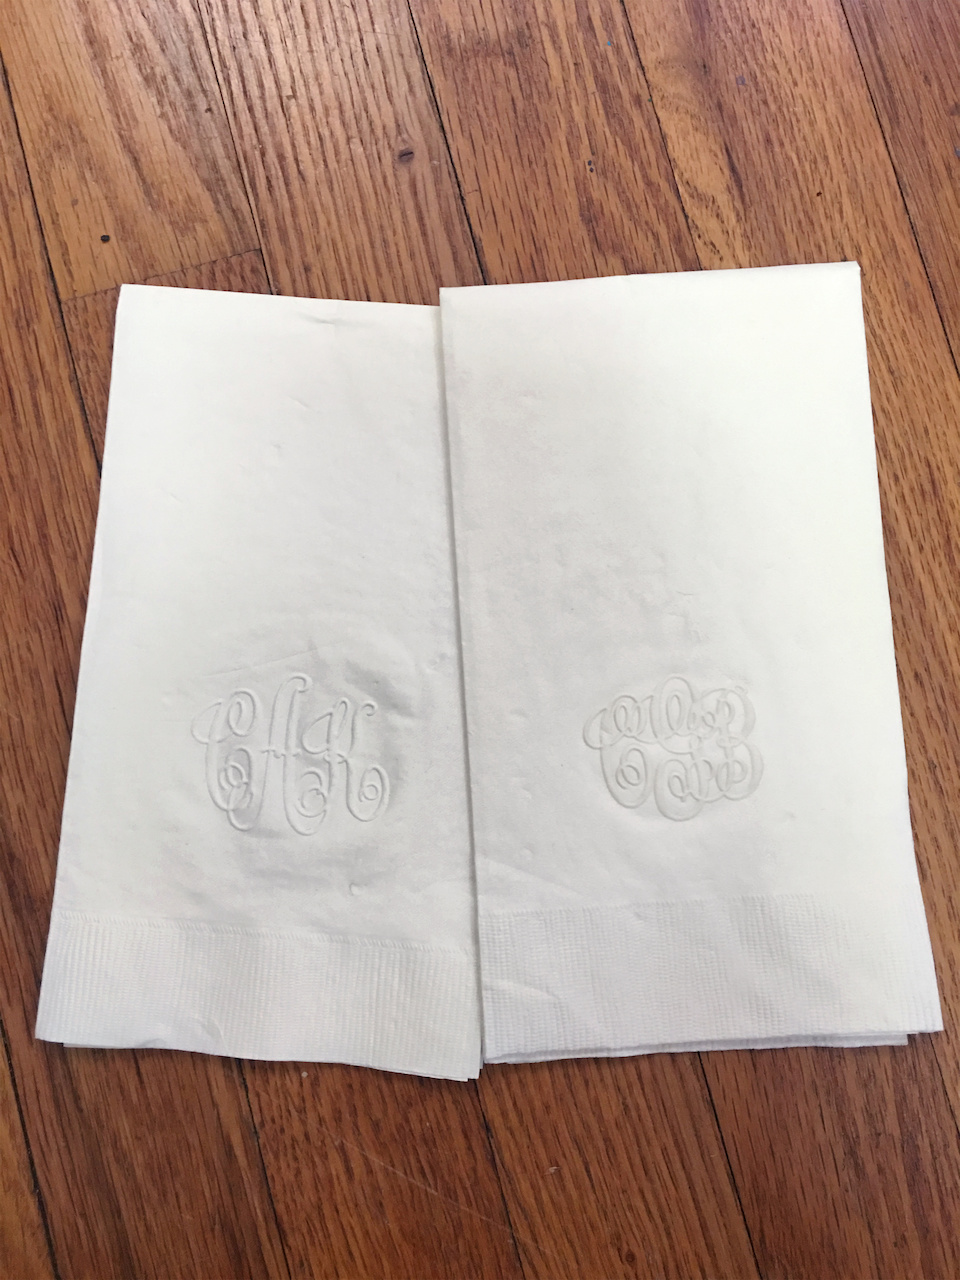 Monogrammed paper napkins, in bundles of 100 for $22.95 plus shipping, at The Scribbler